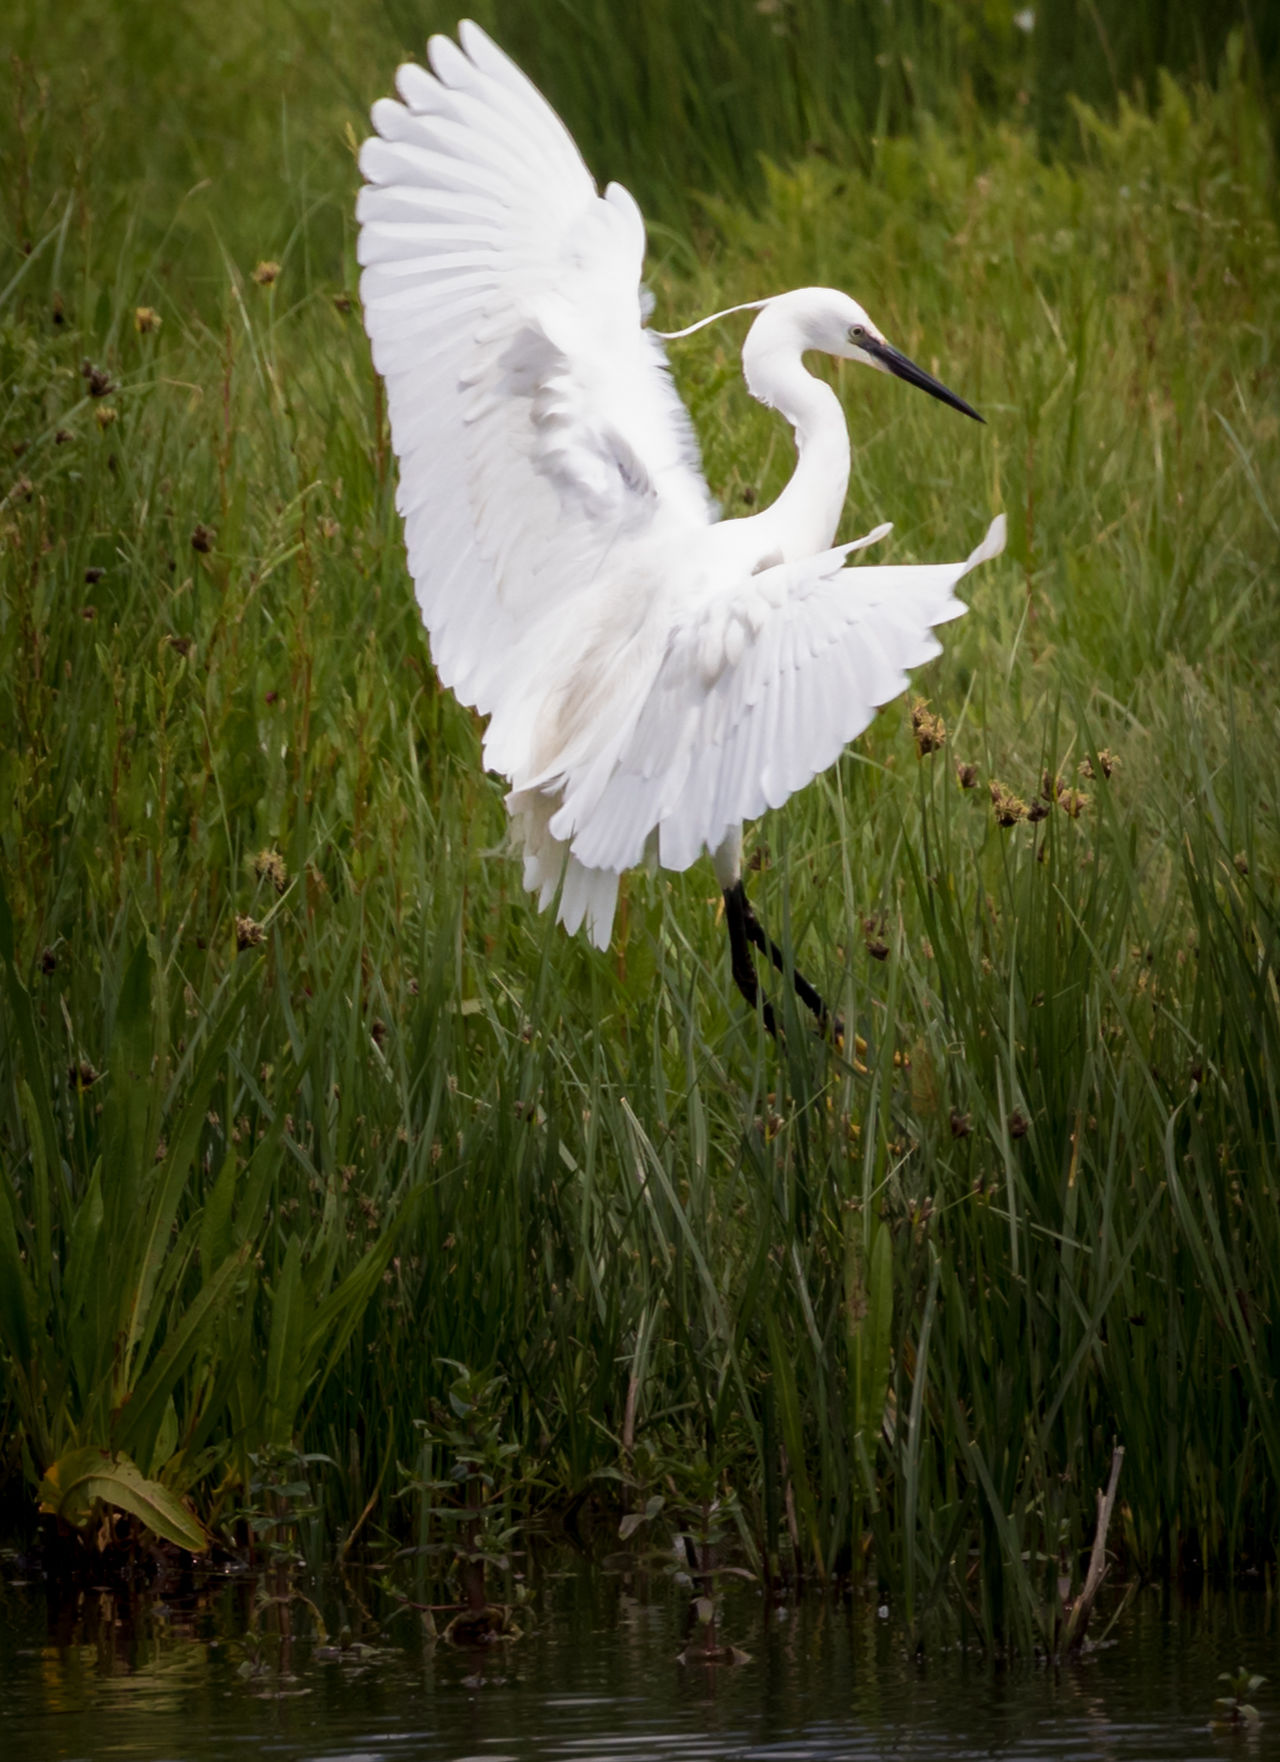 Egret spotted at RSPB Rainham Marshes. This one was being chased by parent birds from a nearby nest 100-400 Mm Animal Themes Animal Wildlife Animals In The Wild Beauty In Nature Bird Canon Canon5dmarkiv Canonphotography Canonuk Day Egret Grass Great Egret Lake Liveforthestory Nature No People One Animal Outdoors Rainham Marshes Spread Wings Water Waterfront White Color